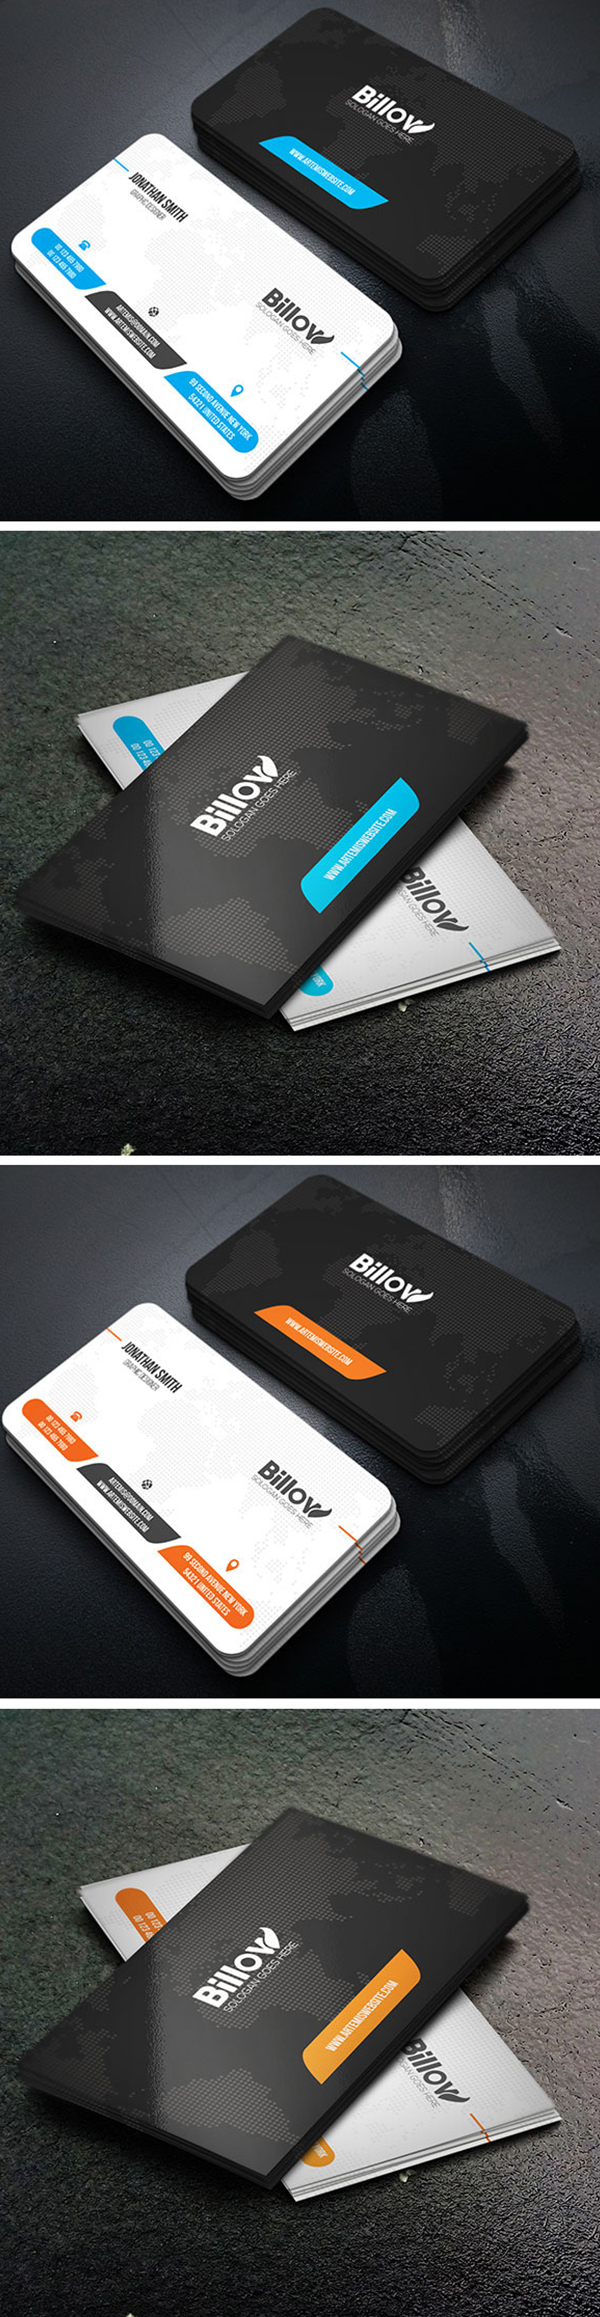 16 Business Card Design